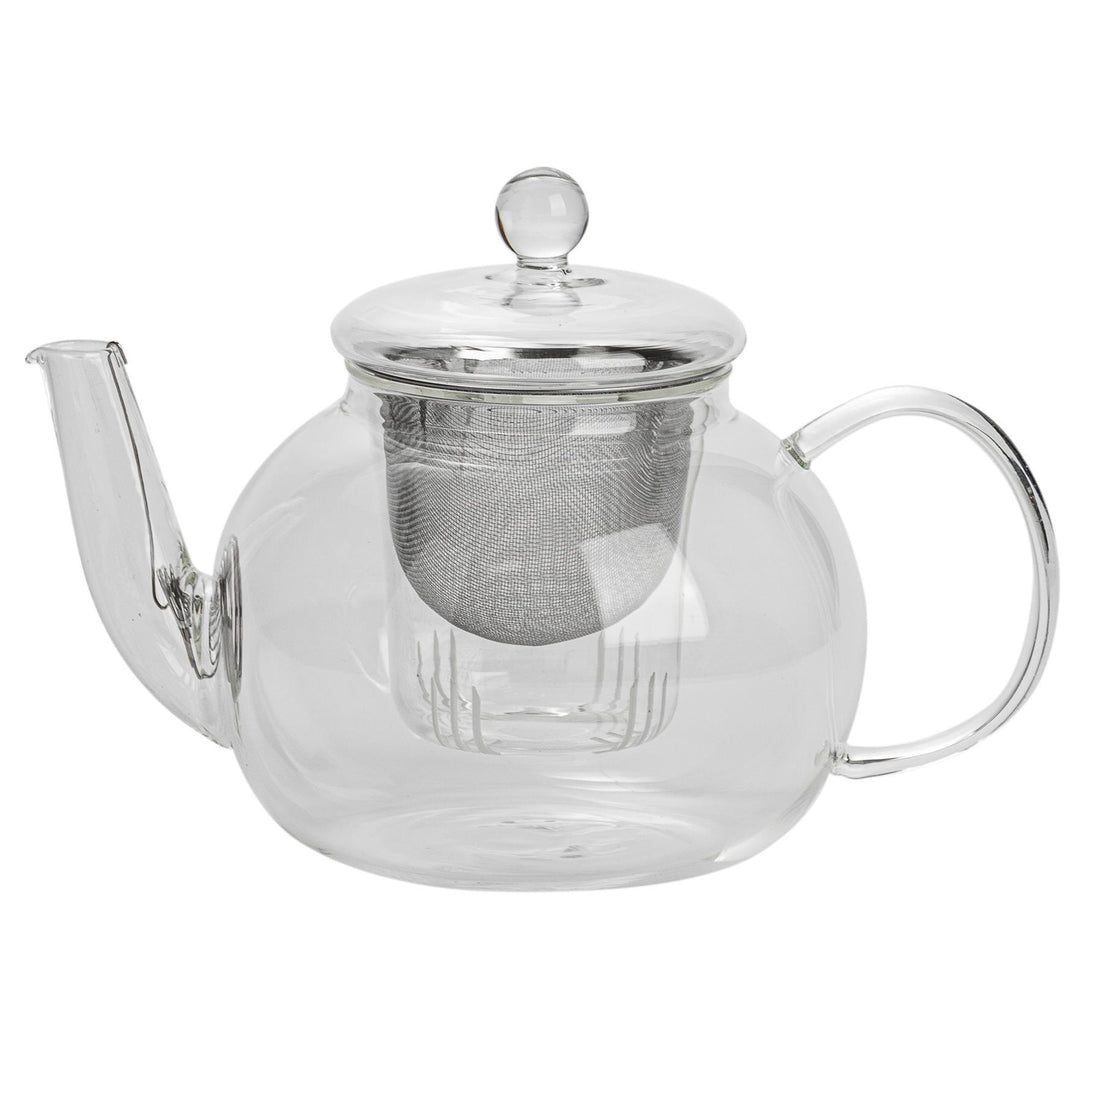 Argon Tableware Glass Infuser Teapot - 1.1 Litre